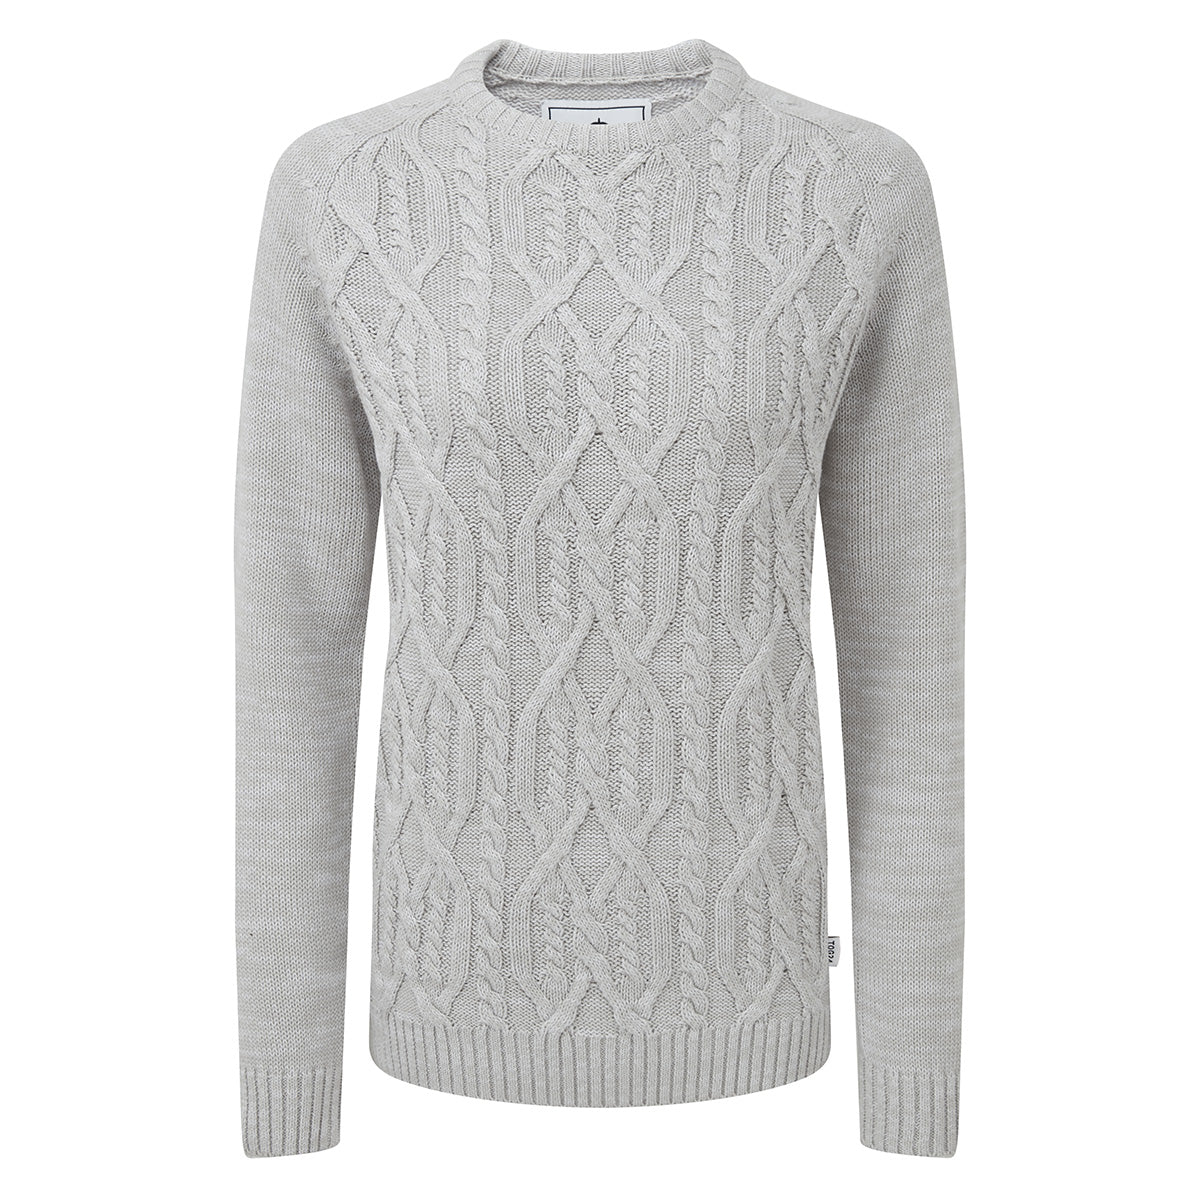 Adele Womens Cable Knit Jumper - Ice Grey image 4